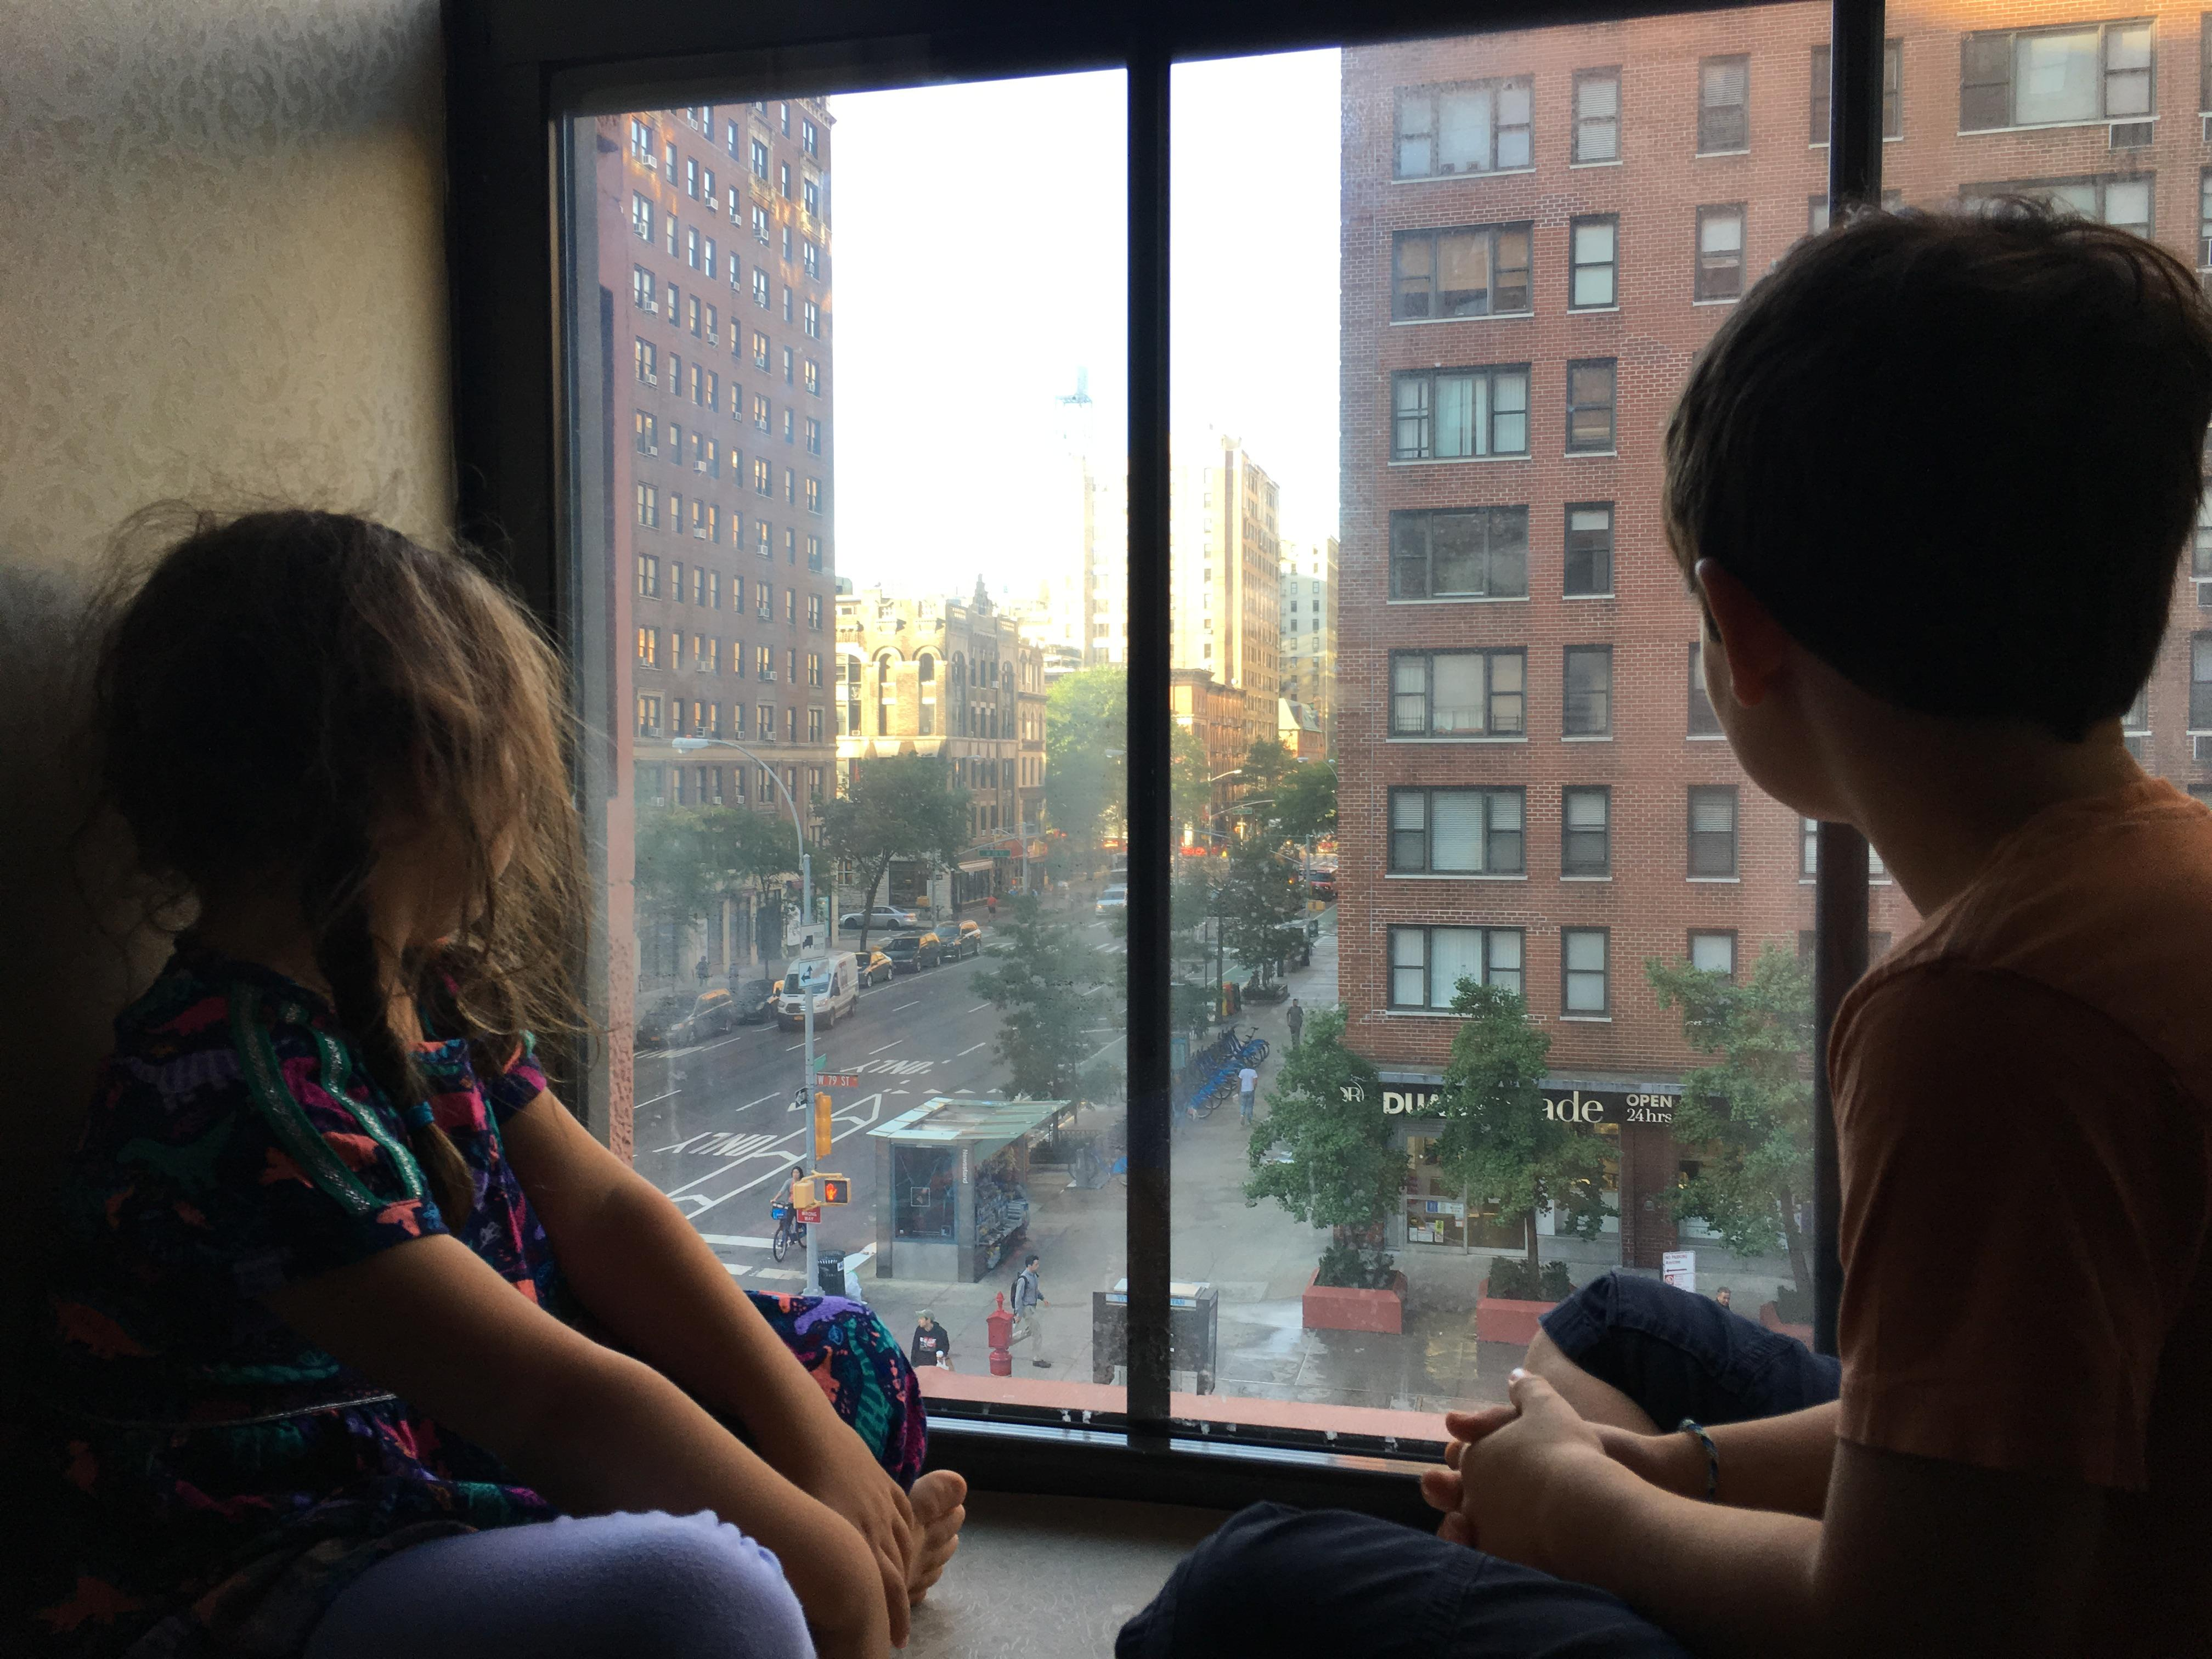 Deep windows are a great for watching the city